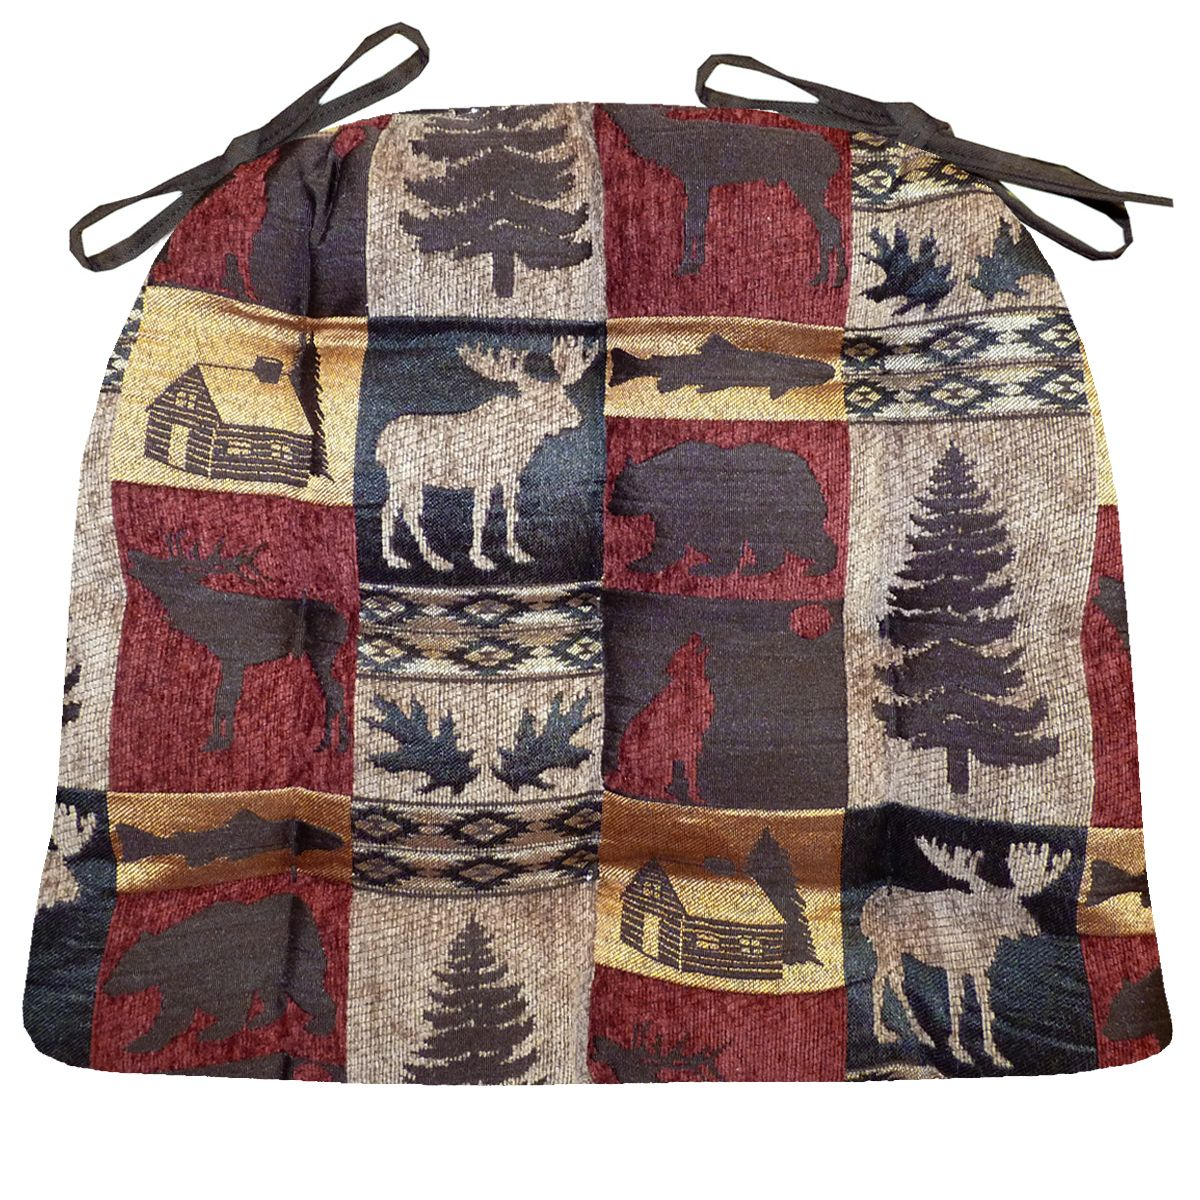 Charming Woodlands Fairbanks Dining Chair Pads Feature Moose, Pines, Log Cabins And  Other Rustic Lodge Decor Motif In A Quilt Block Style Tapestry Of Dark Red,  ...